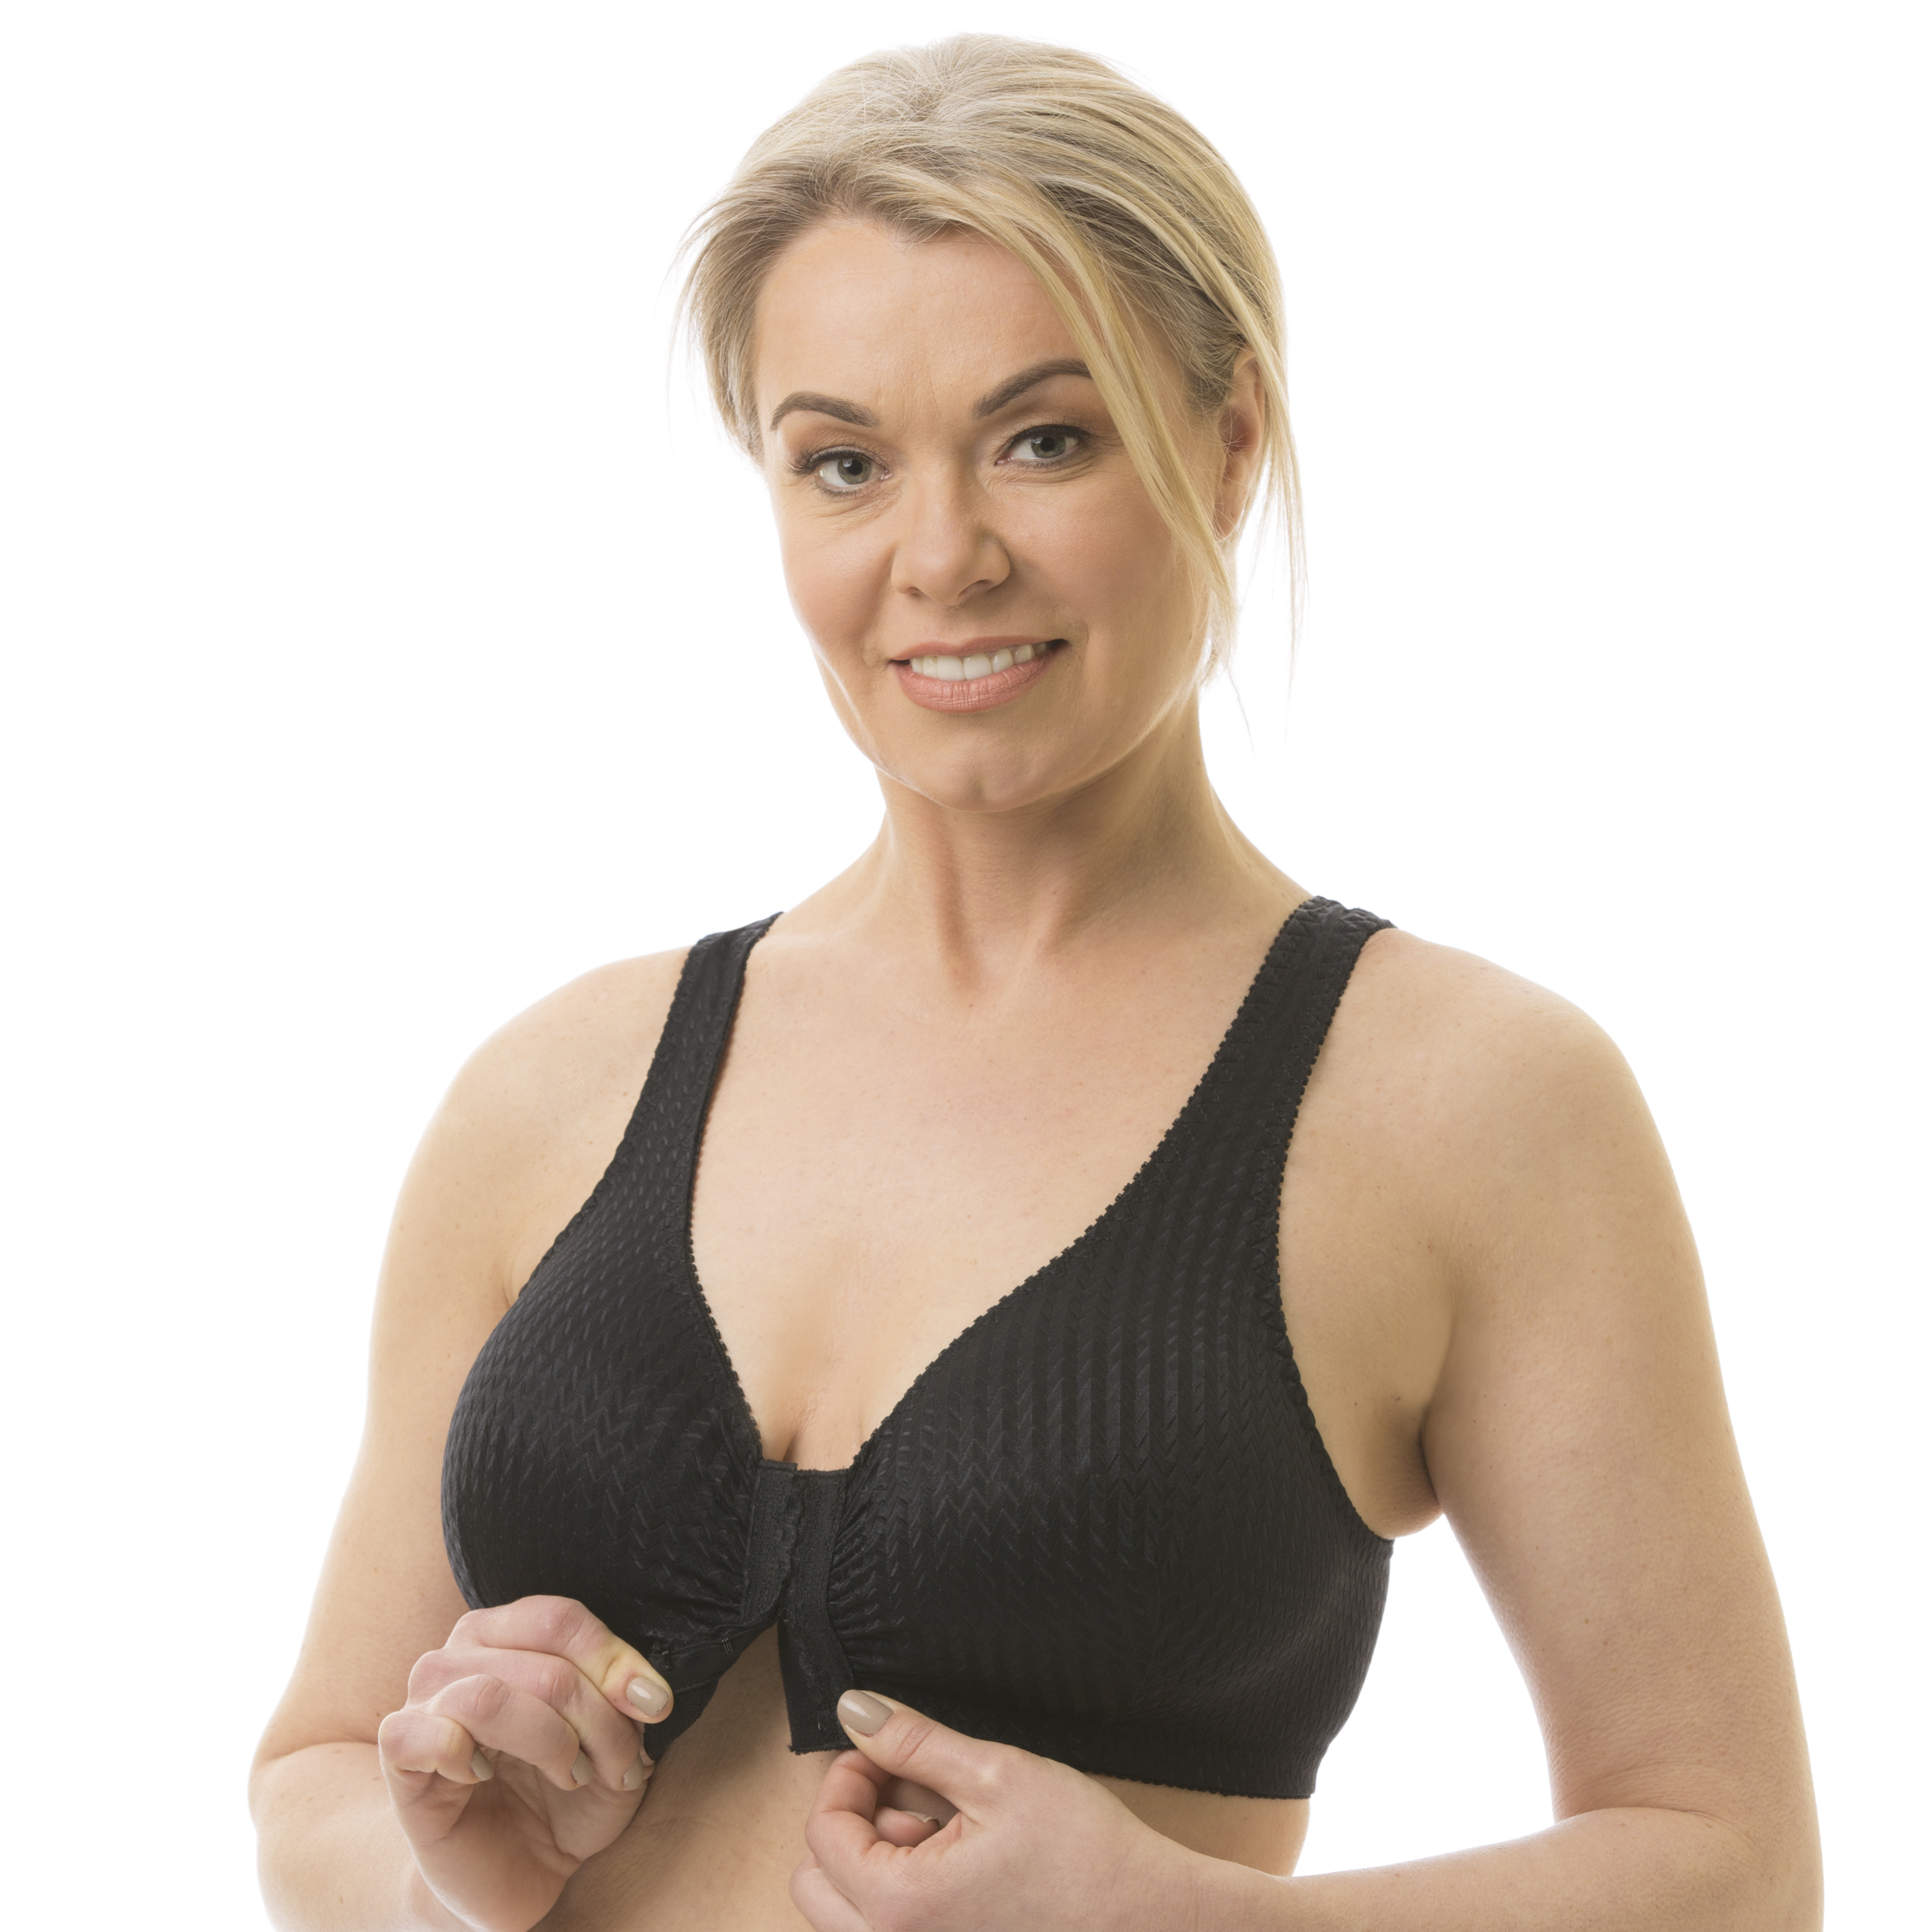 Woman modeling a Carole Martin Full-Freedom Comfort Bra in black